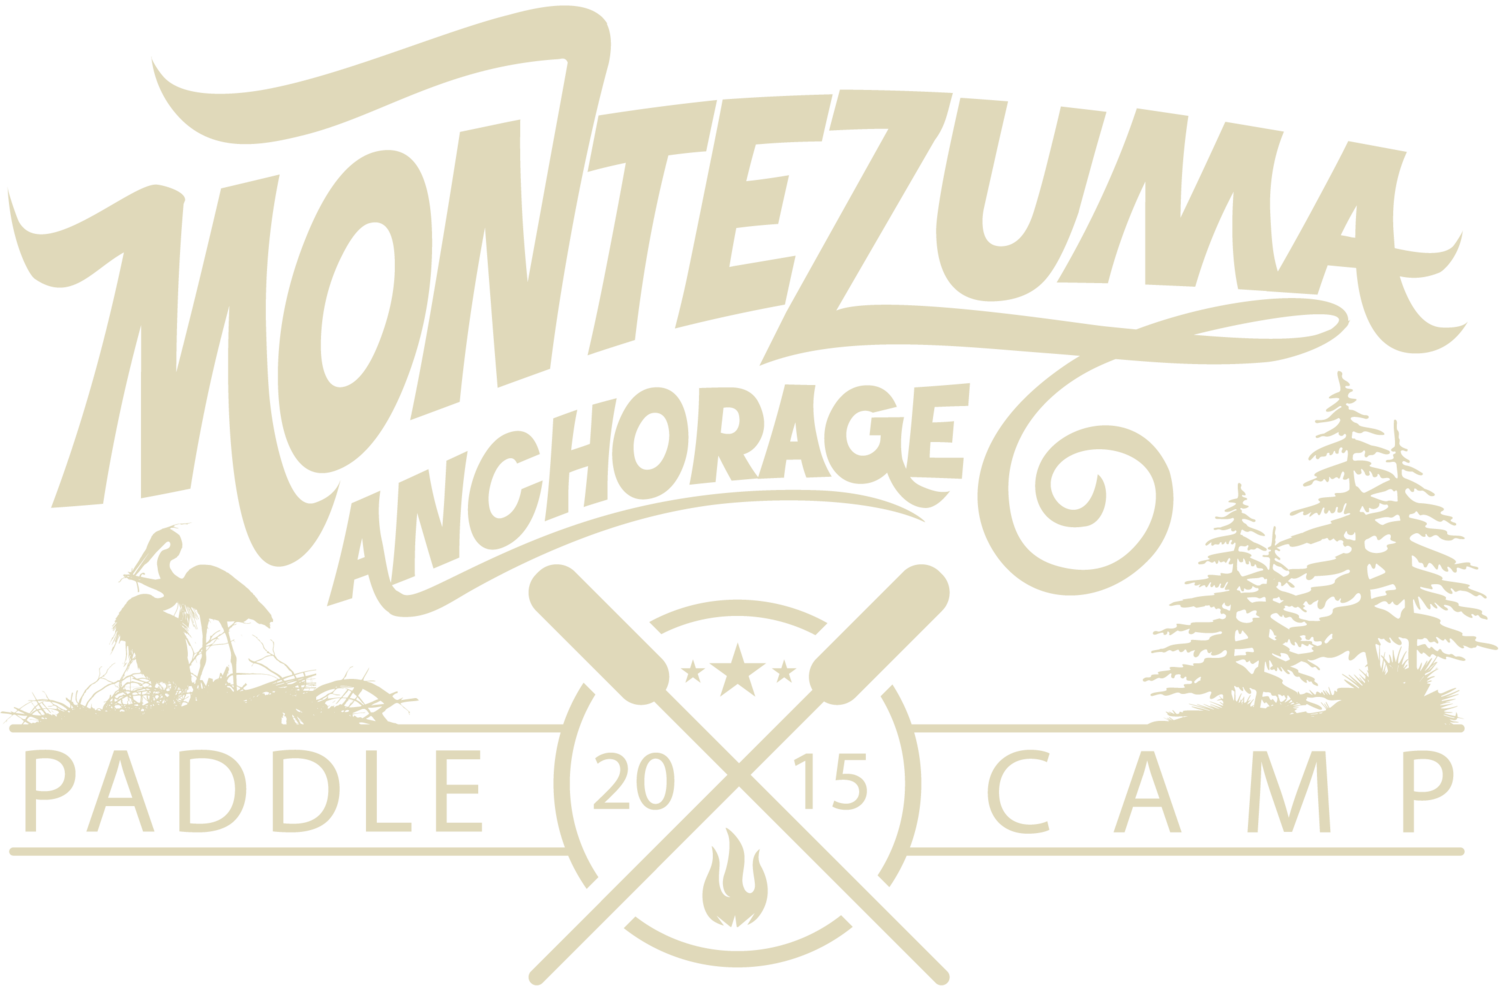 Montezuma Anchorage Paddle Camp